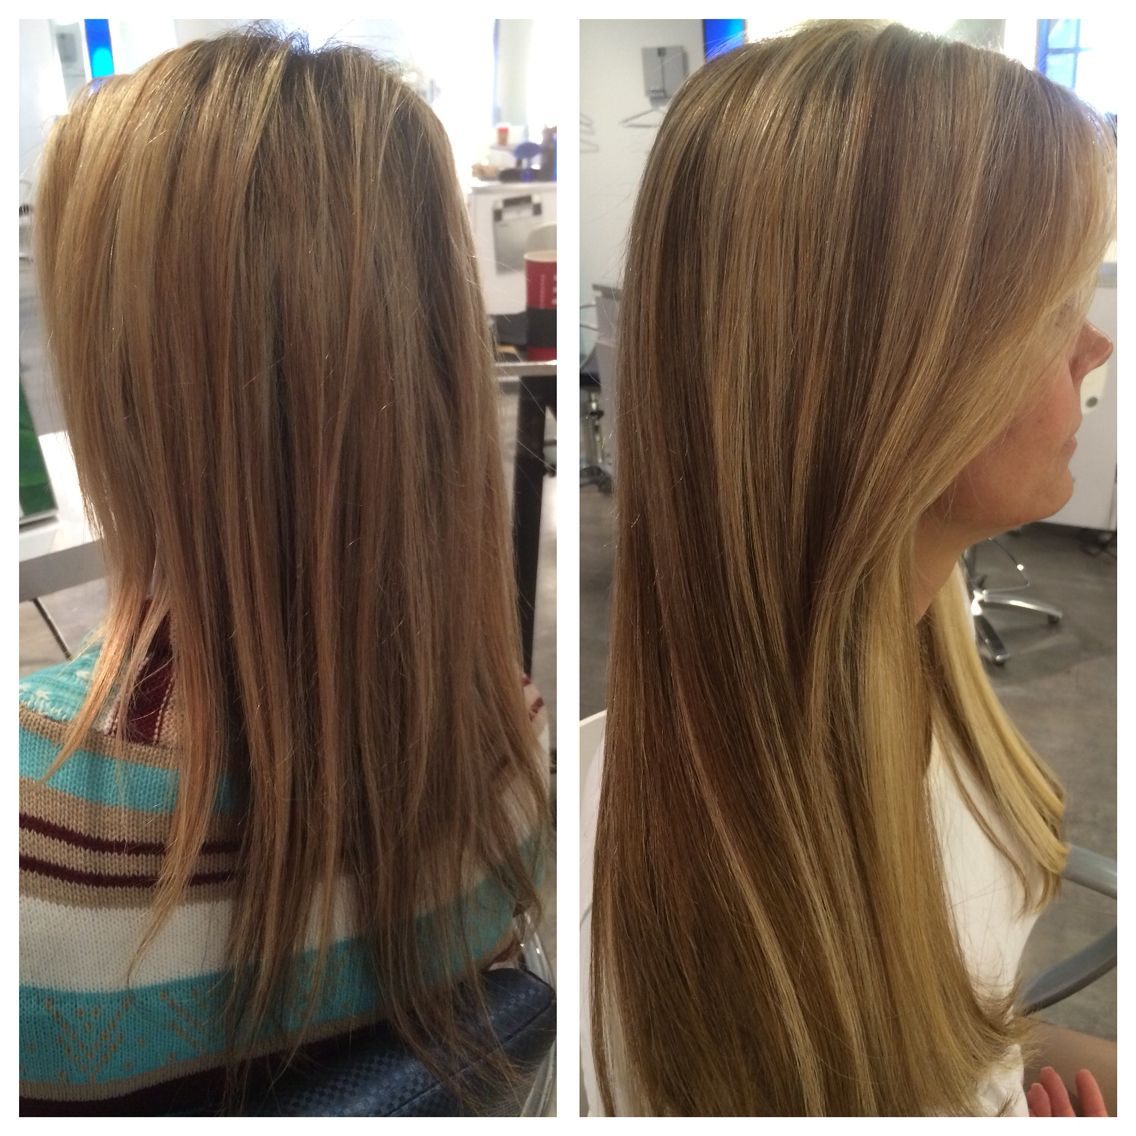 Before After Extension Work By Xavier Menard At Salon Prive Hair